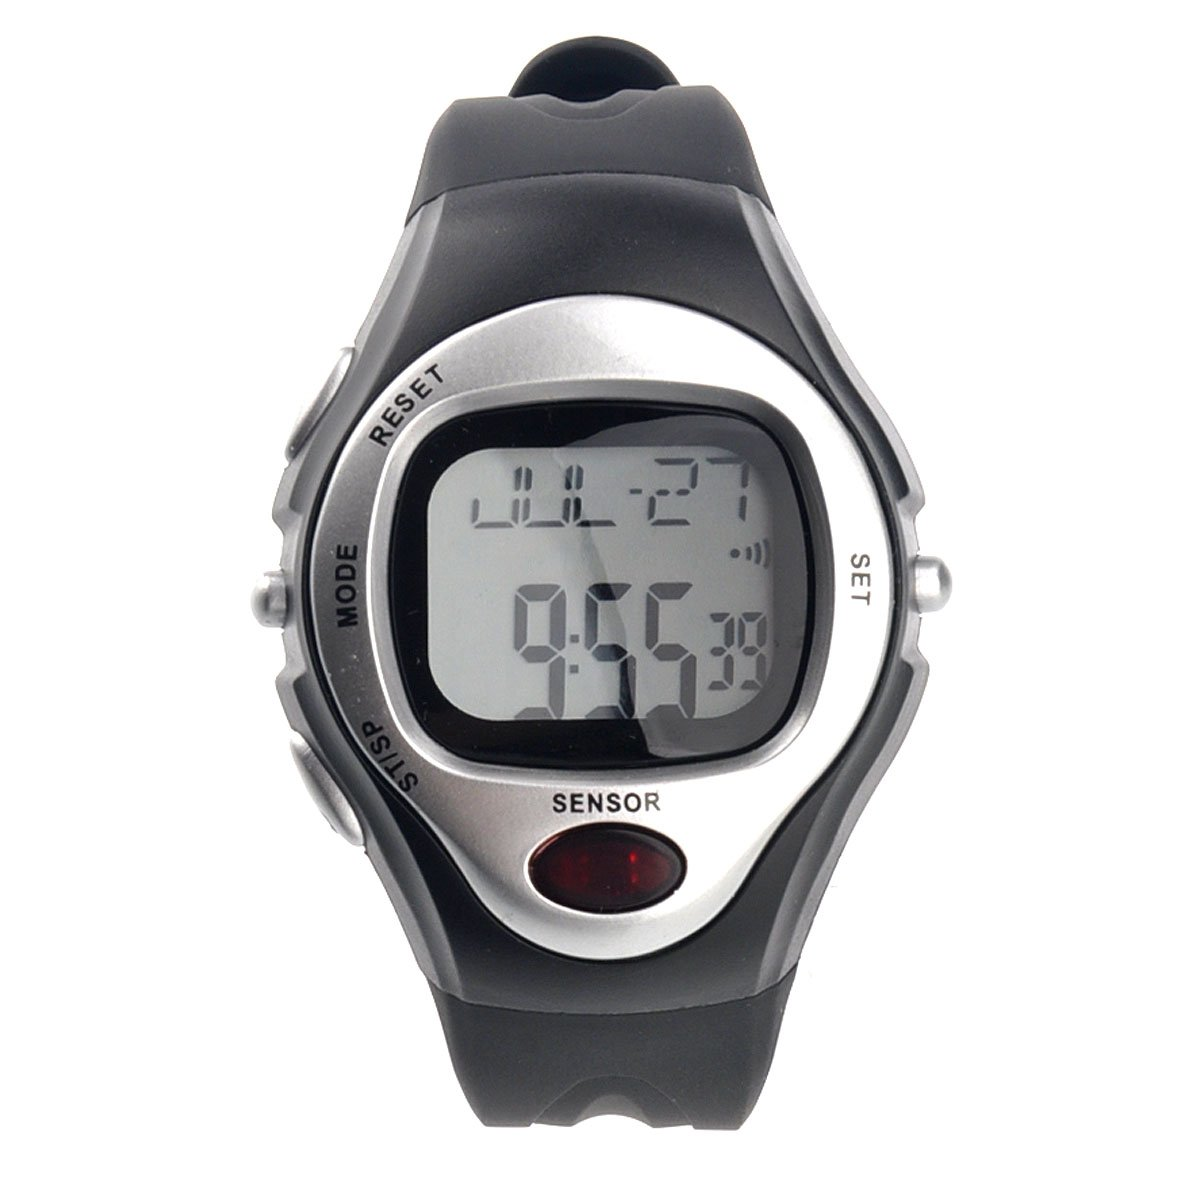 PROMOTION!R022M Waterproof Sports Pulse Rate Monitor Counter Digital (Silver)